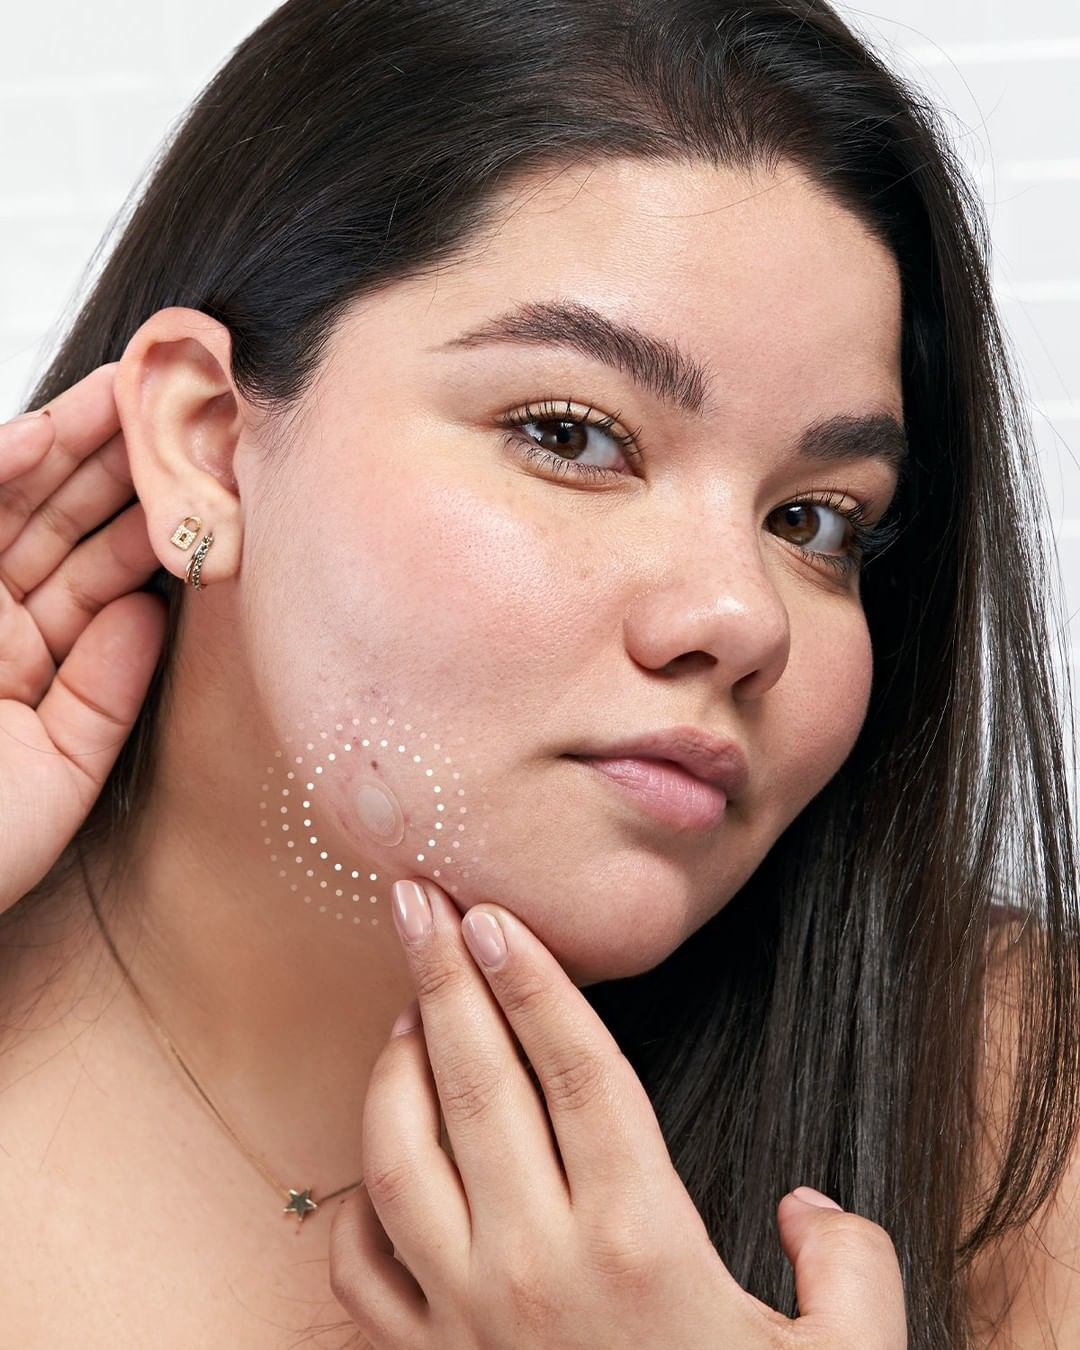 model applying pimple patch to their chin